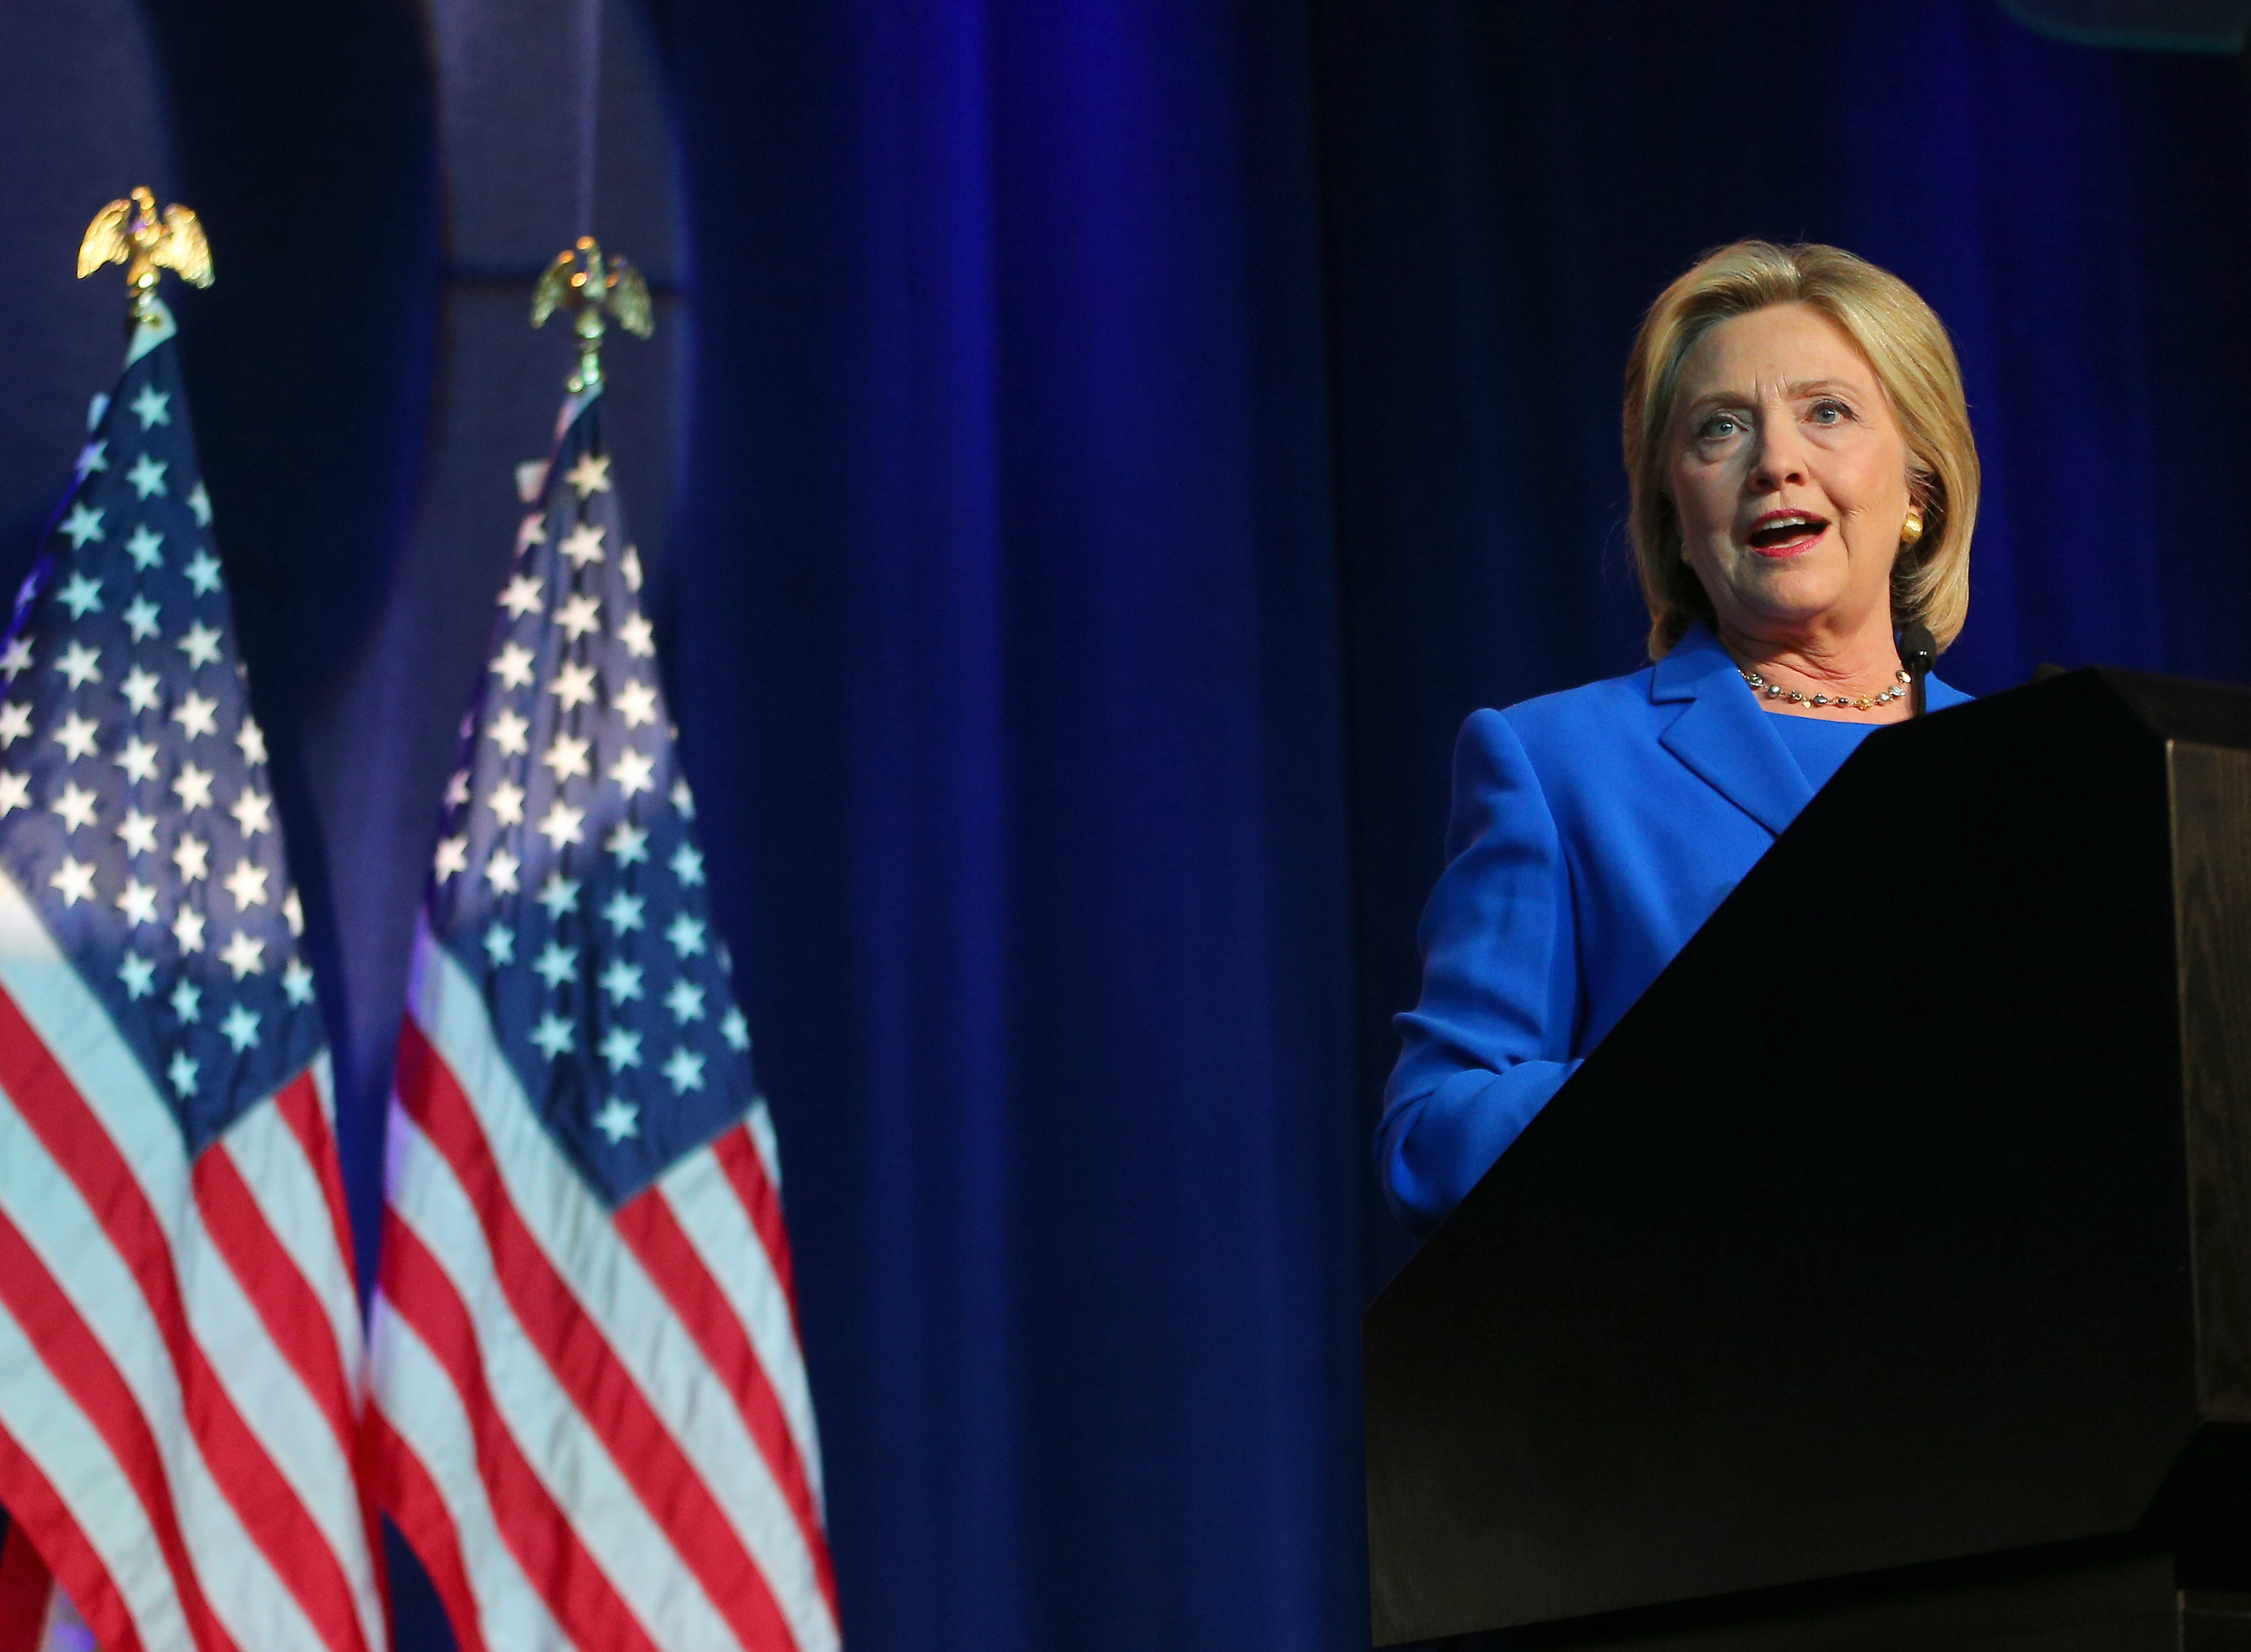 Hillary Clinton speaks at the Democratic National Committee summer meeting in Minneapolis on Aug. 28, 2015.